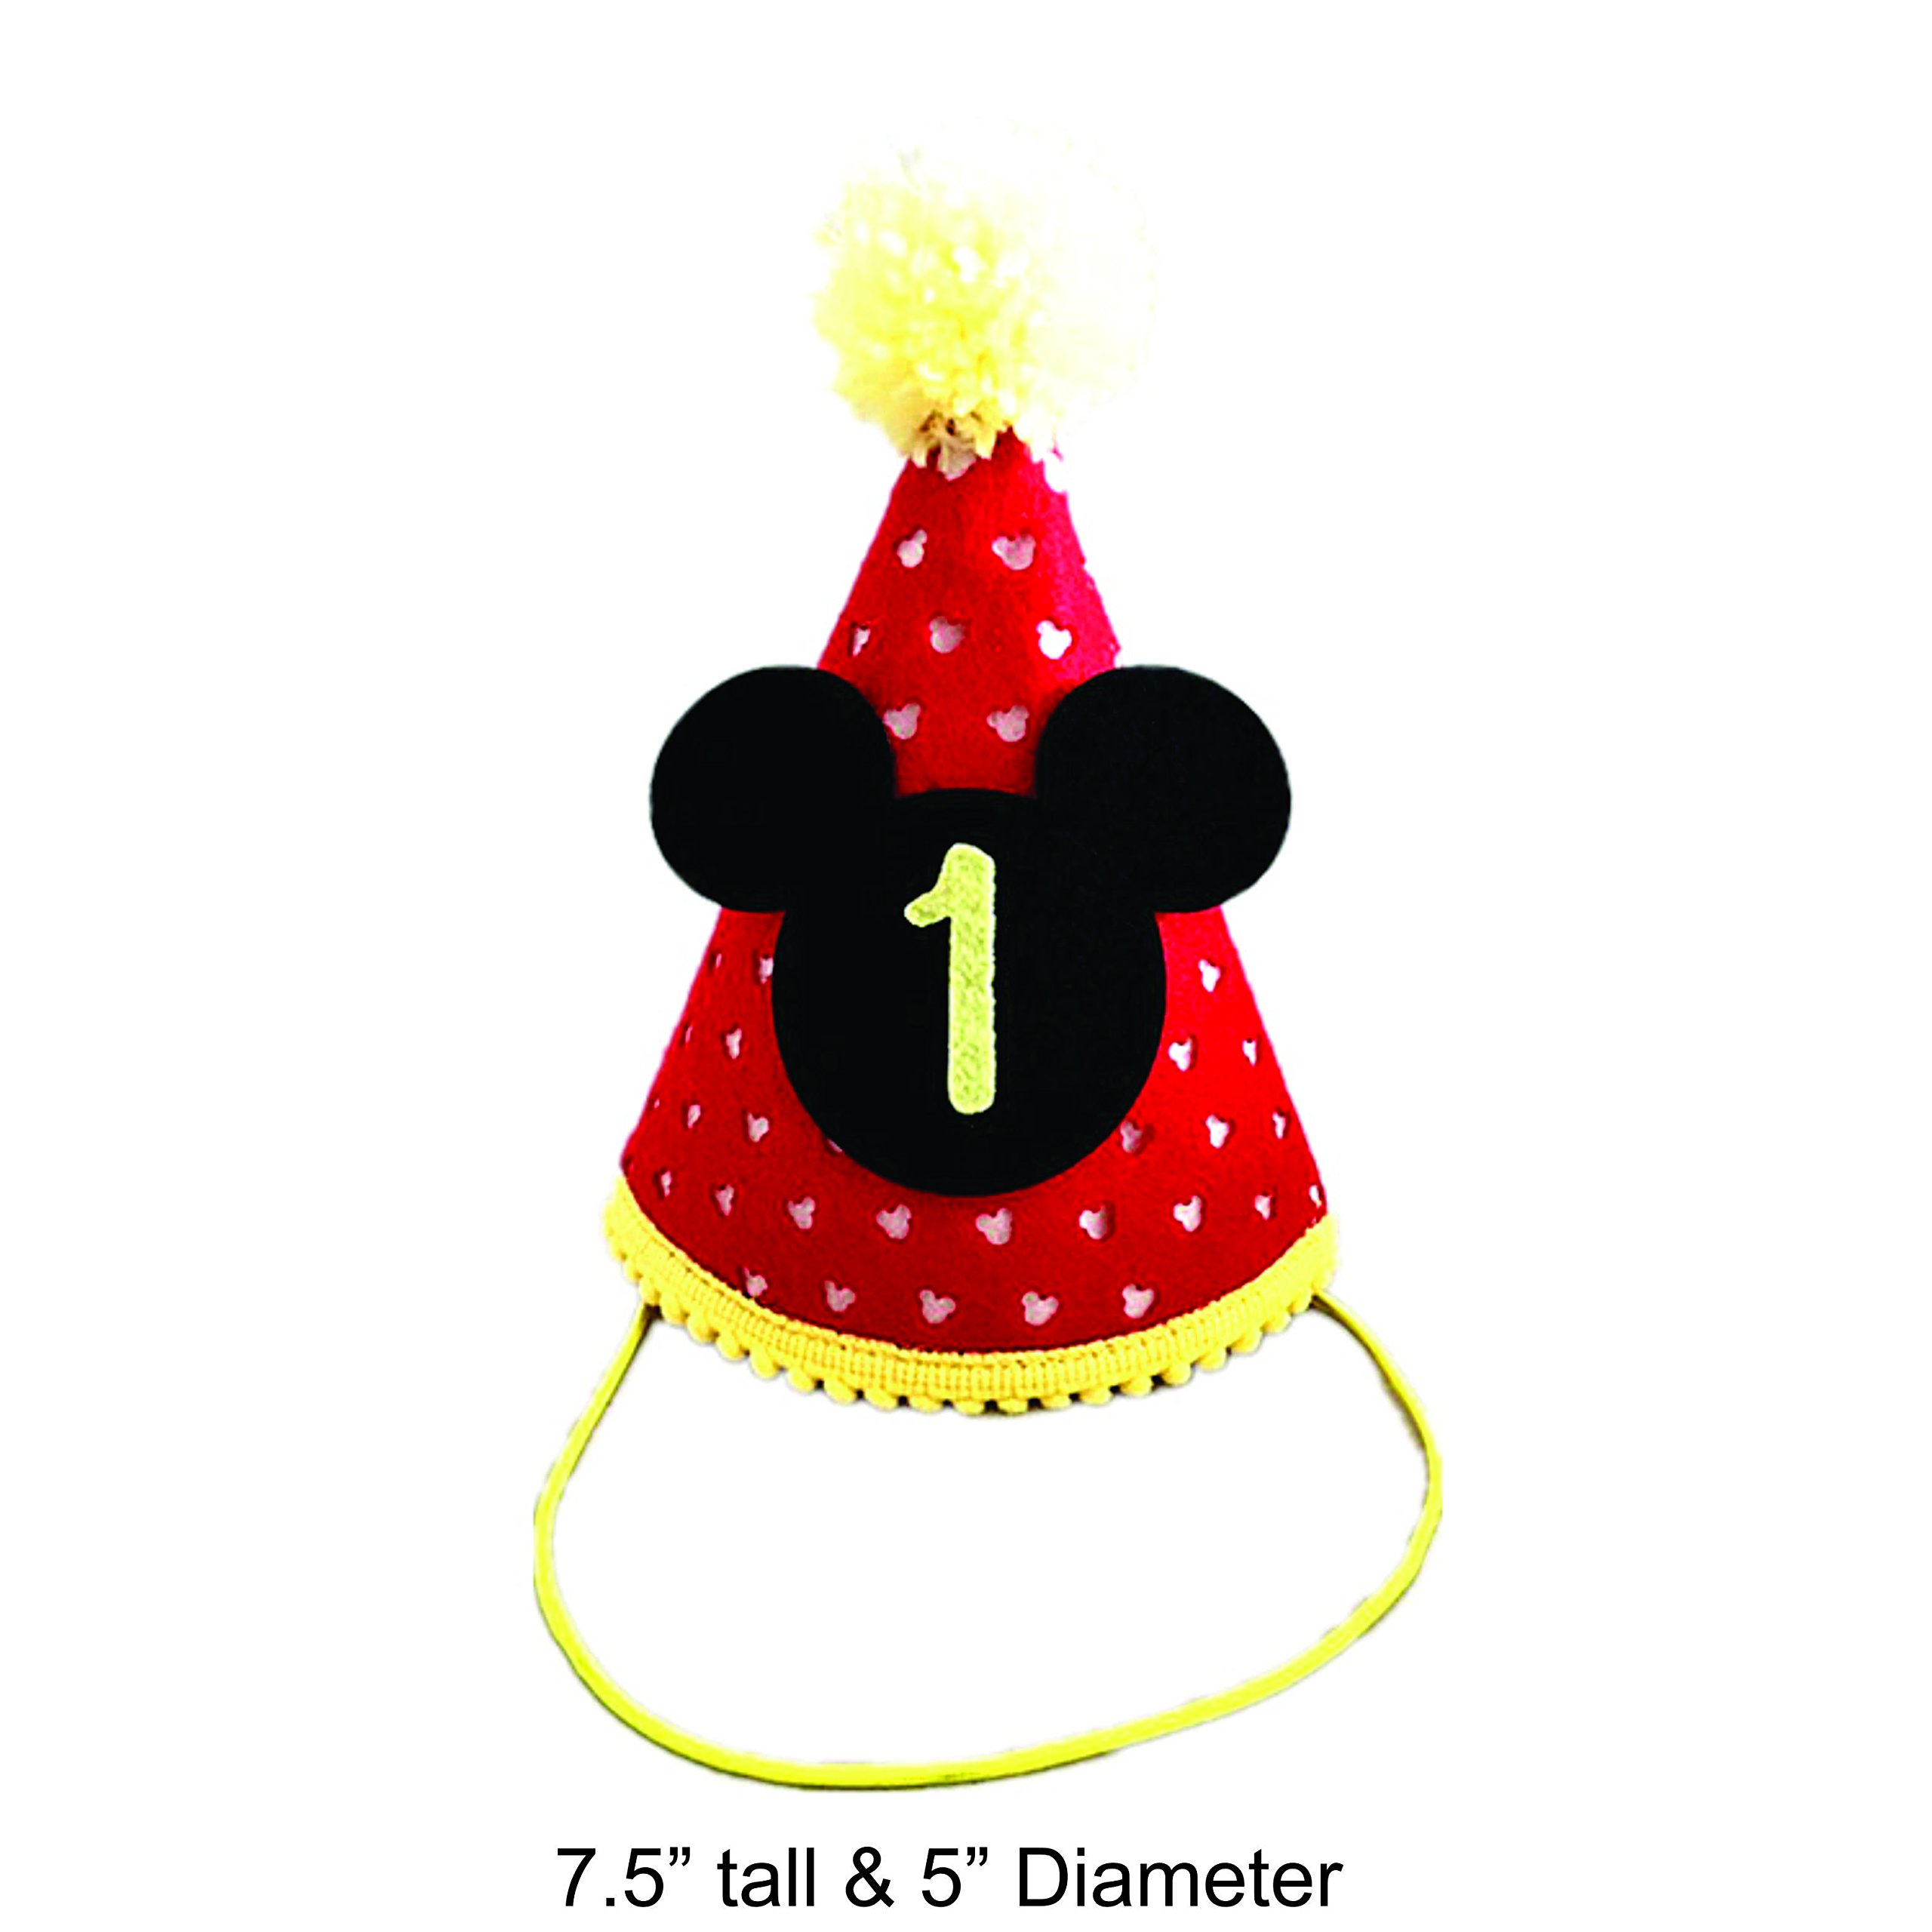 Mickey party hat| First Birthday Outfit Boy Mickey Mouse Party Hat Cake Smash Outfit | 1st Birthday Outfit | Party Hat | Cake Smash Cake Photoshoot Photoprop (First Birthday Hat, Elastic Strap)